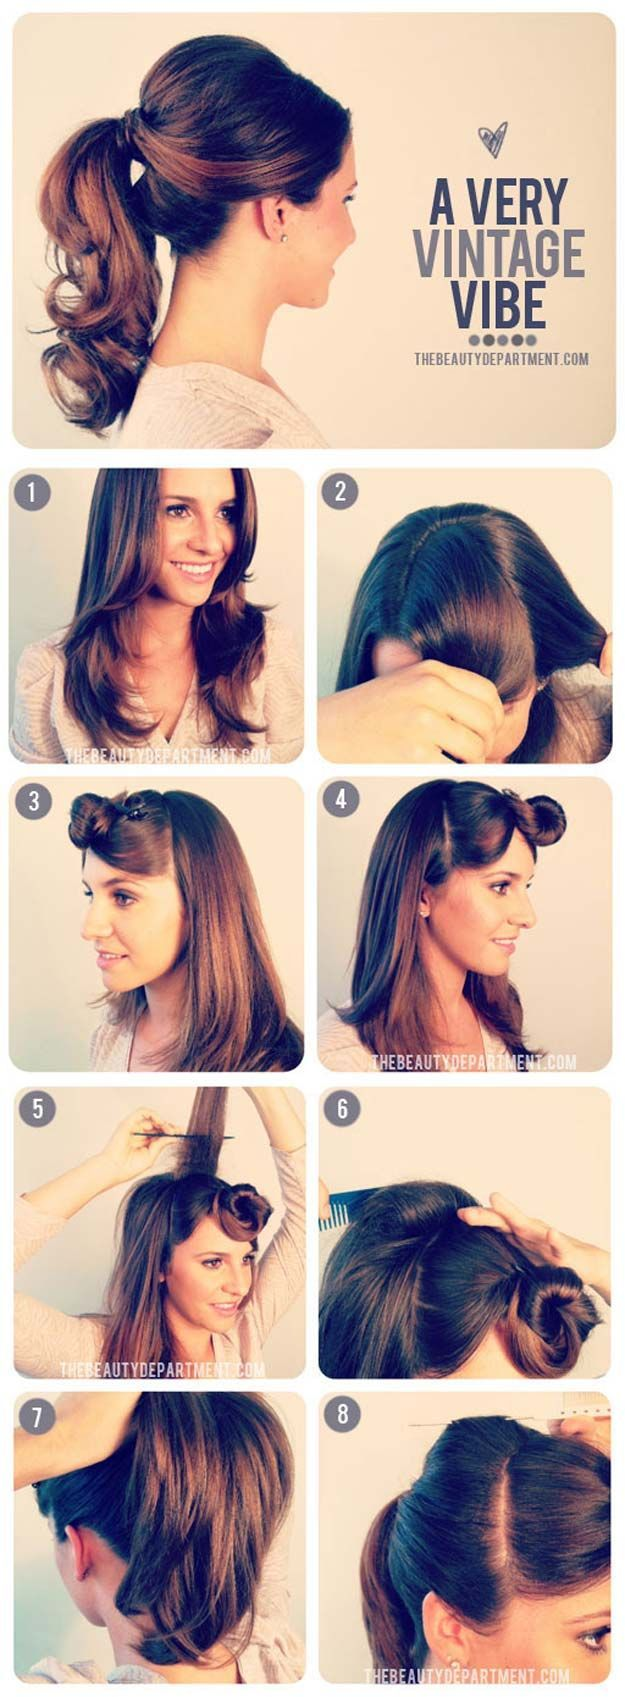 Easy Hairstyles for Work - 1950's Inspired Ponytail - Quick and Easy Hairstyles ...